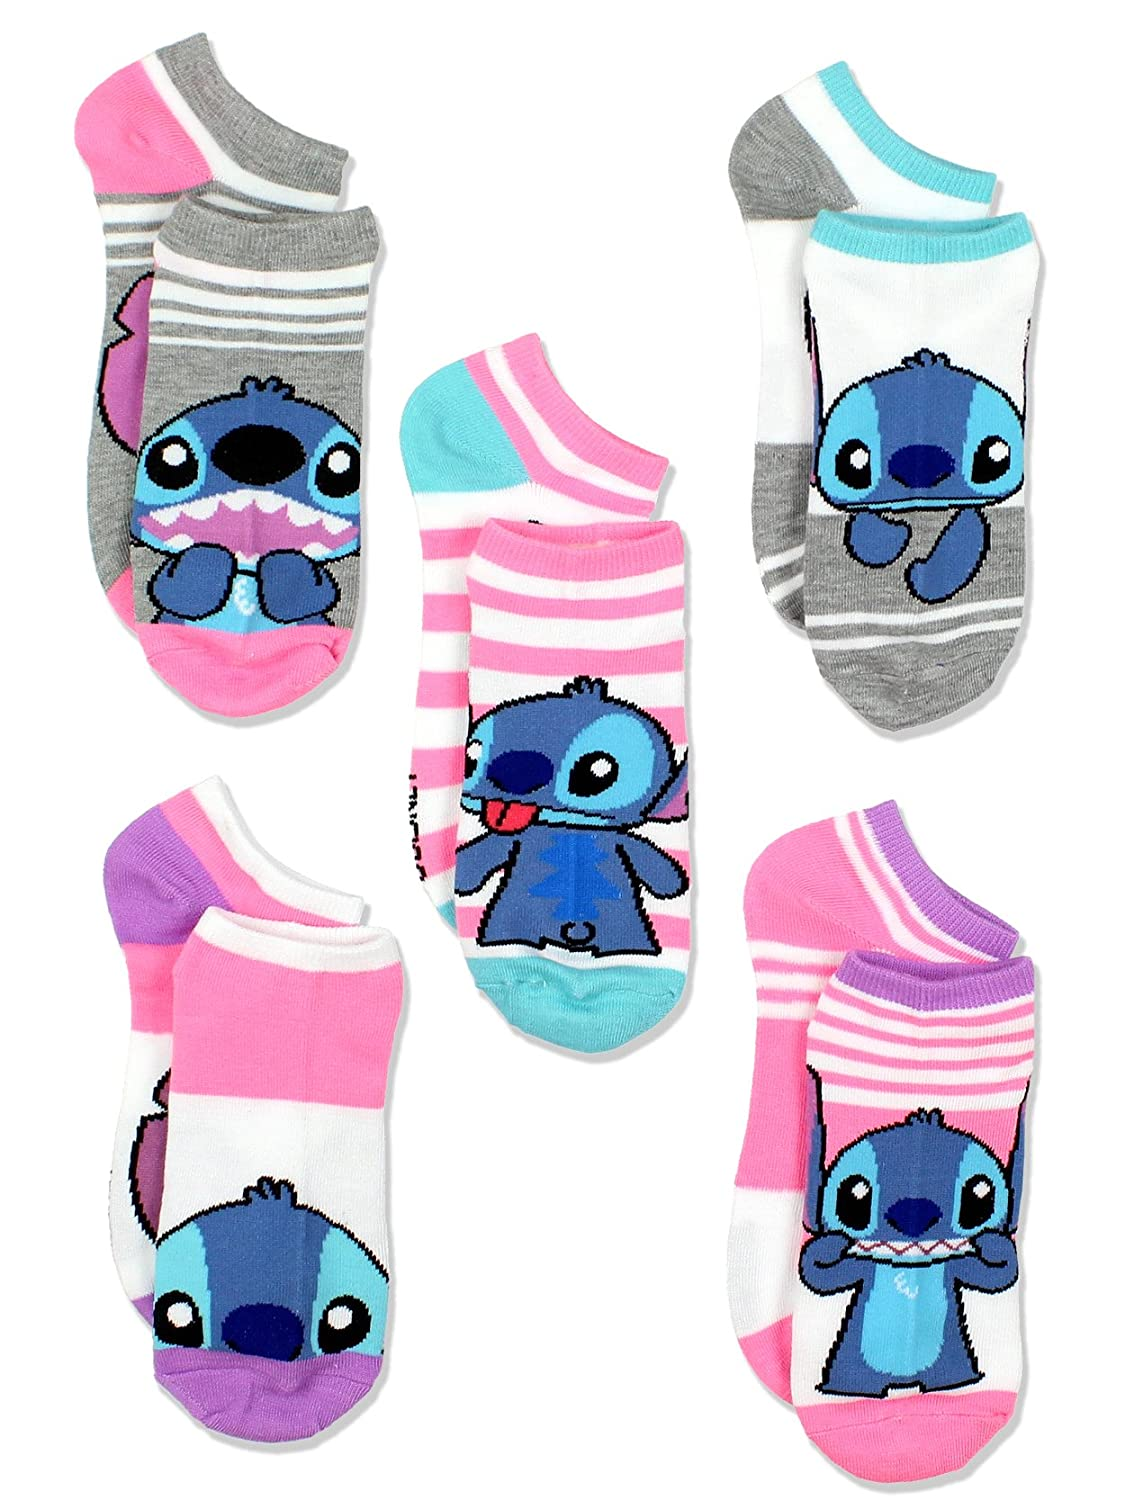 Lilo & Stitch Womens Multi Pack Socks (Teen/Adult) Pink/Multi) manufacturer